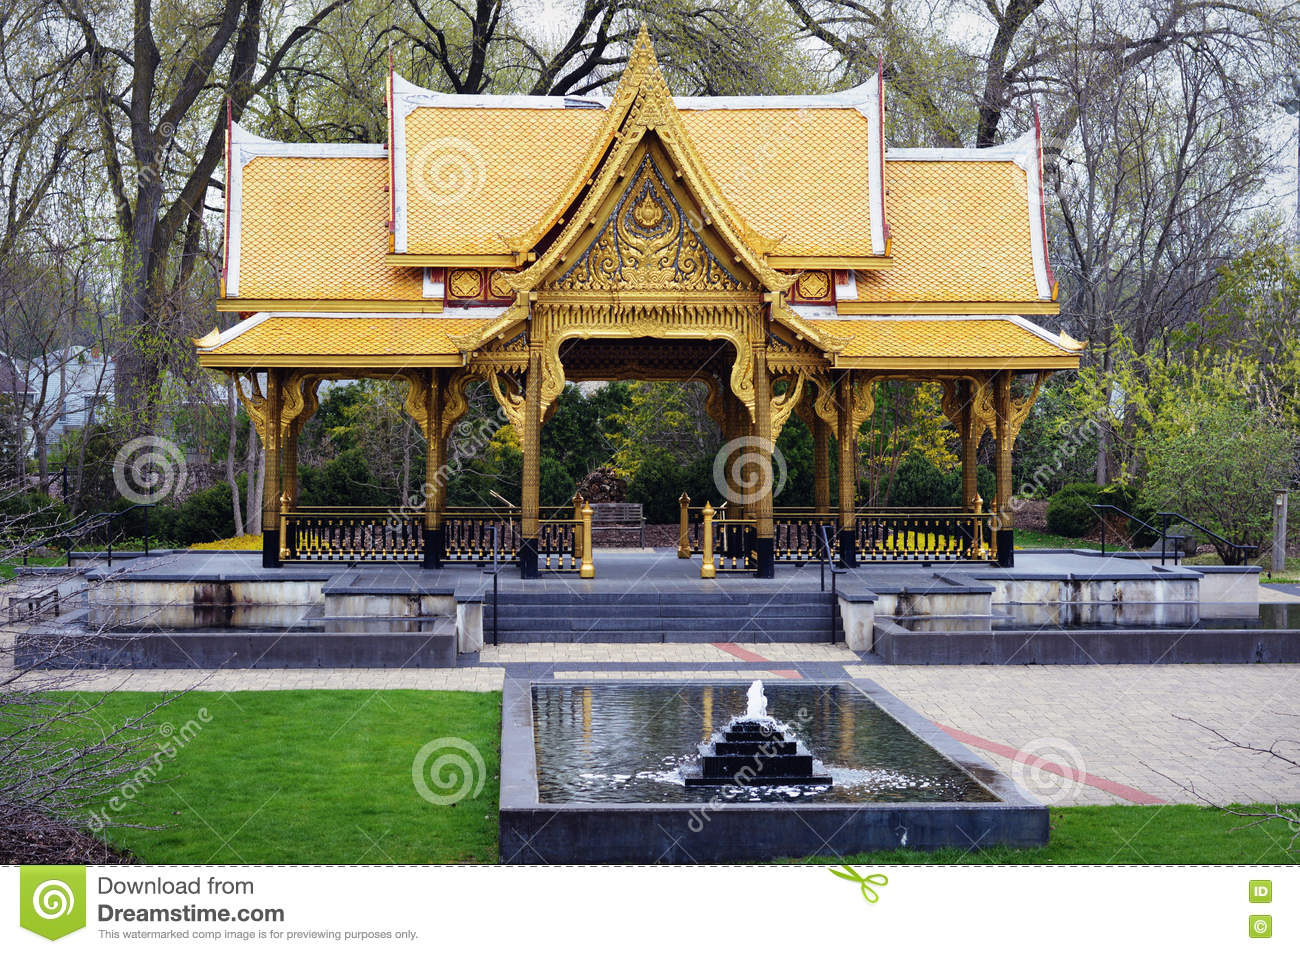 Fall Comes To Garden Of Thai Pavilion >> Thai Pavillion Stock Image Image Of Gardens Wisconsin 71017527